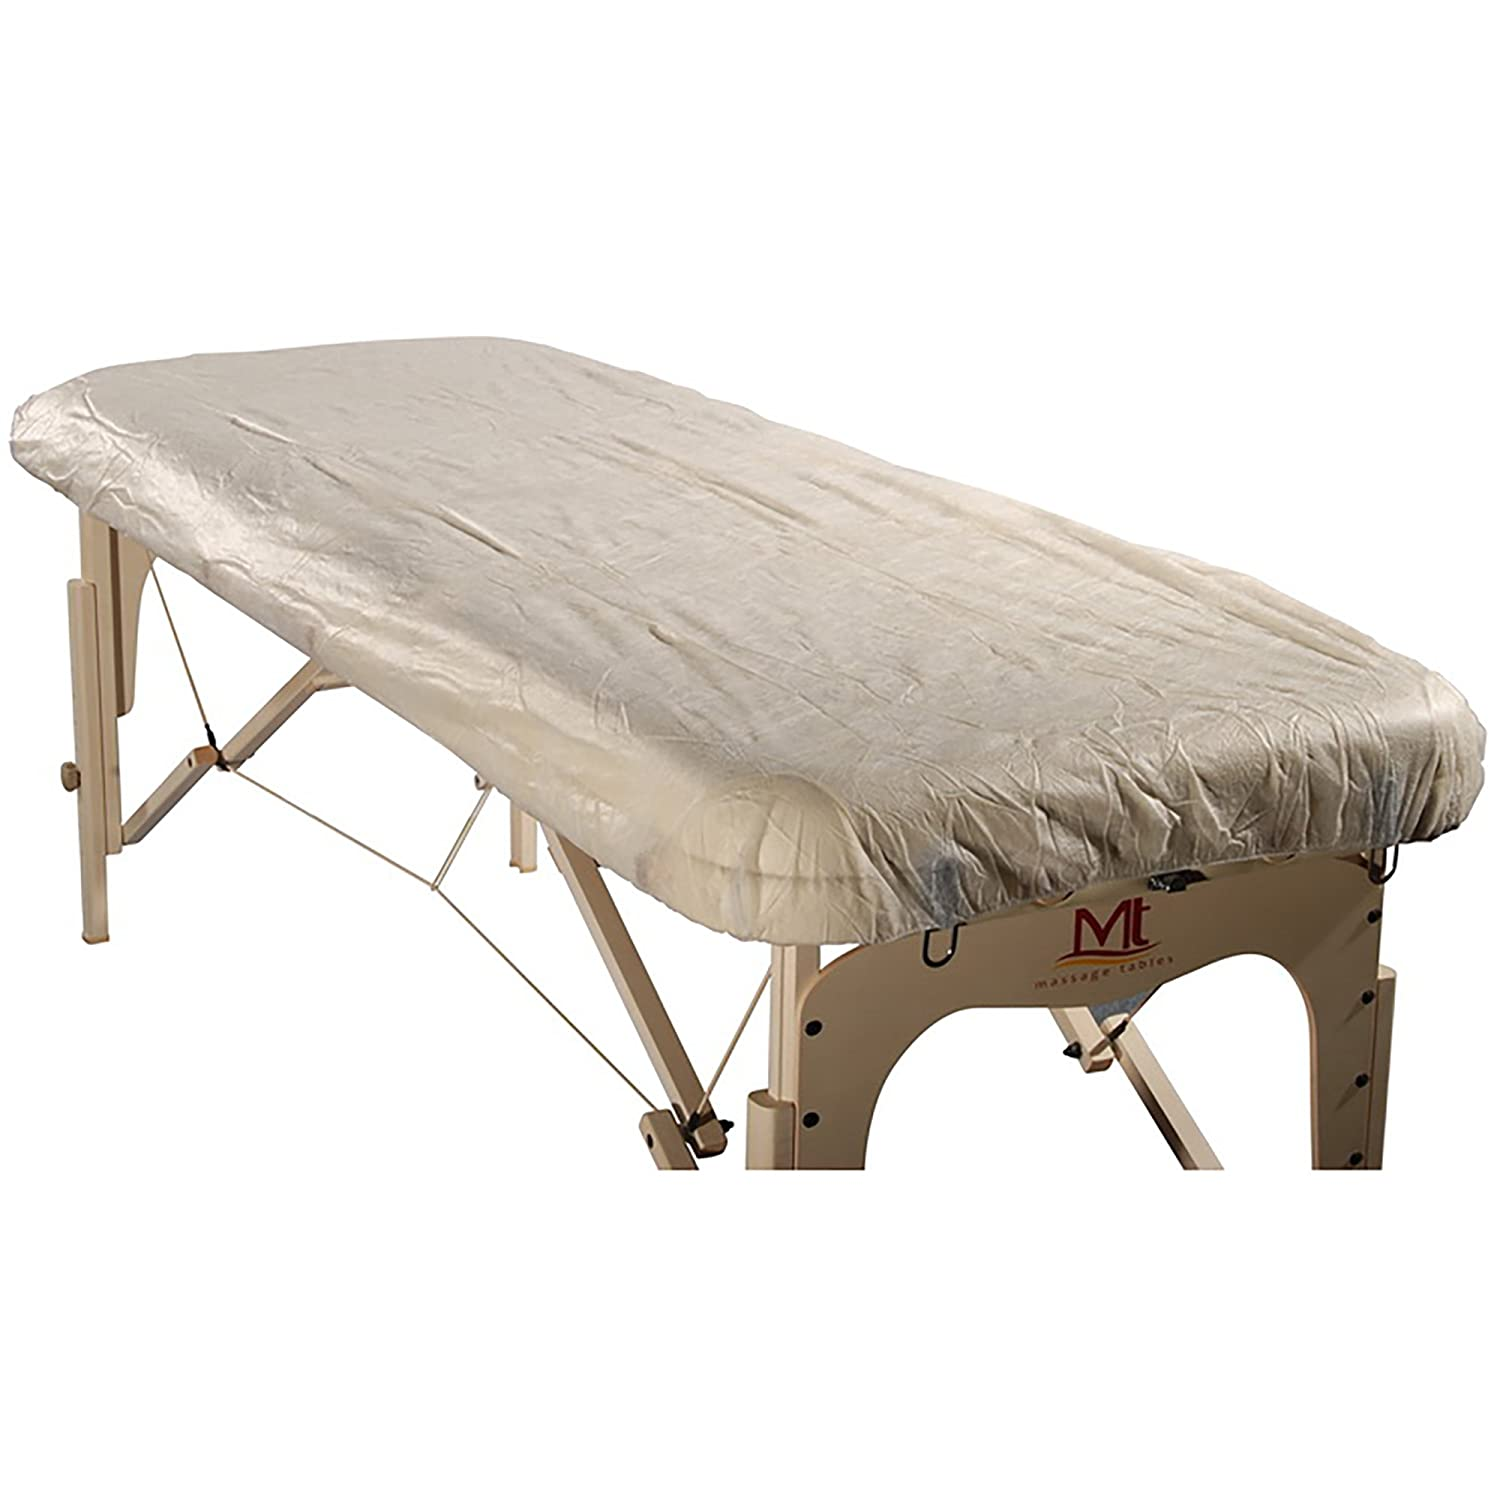 Mt Massage Disposable Fitted Table Cover(Pack of 10) for Massage Table Master Home Products LTD. (DROPSHIP)